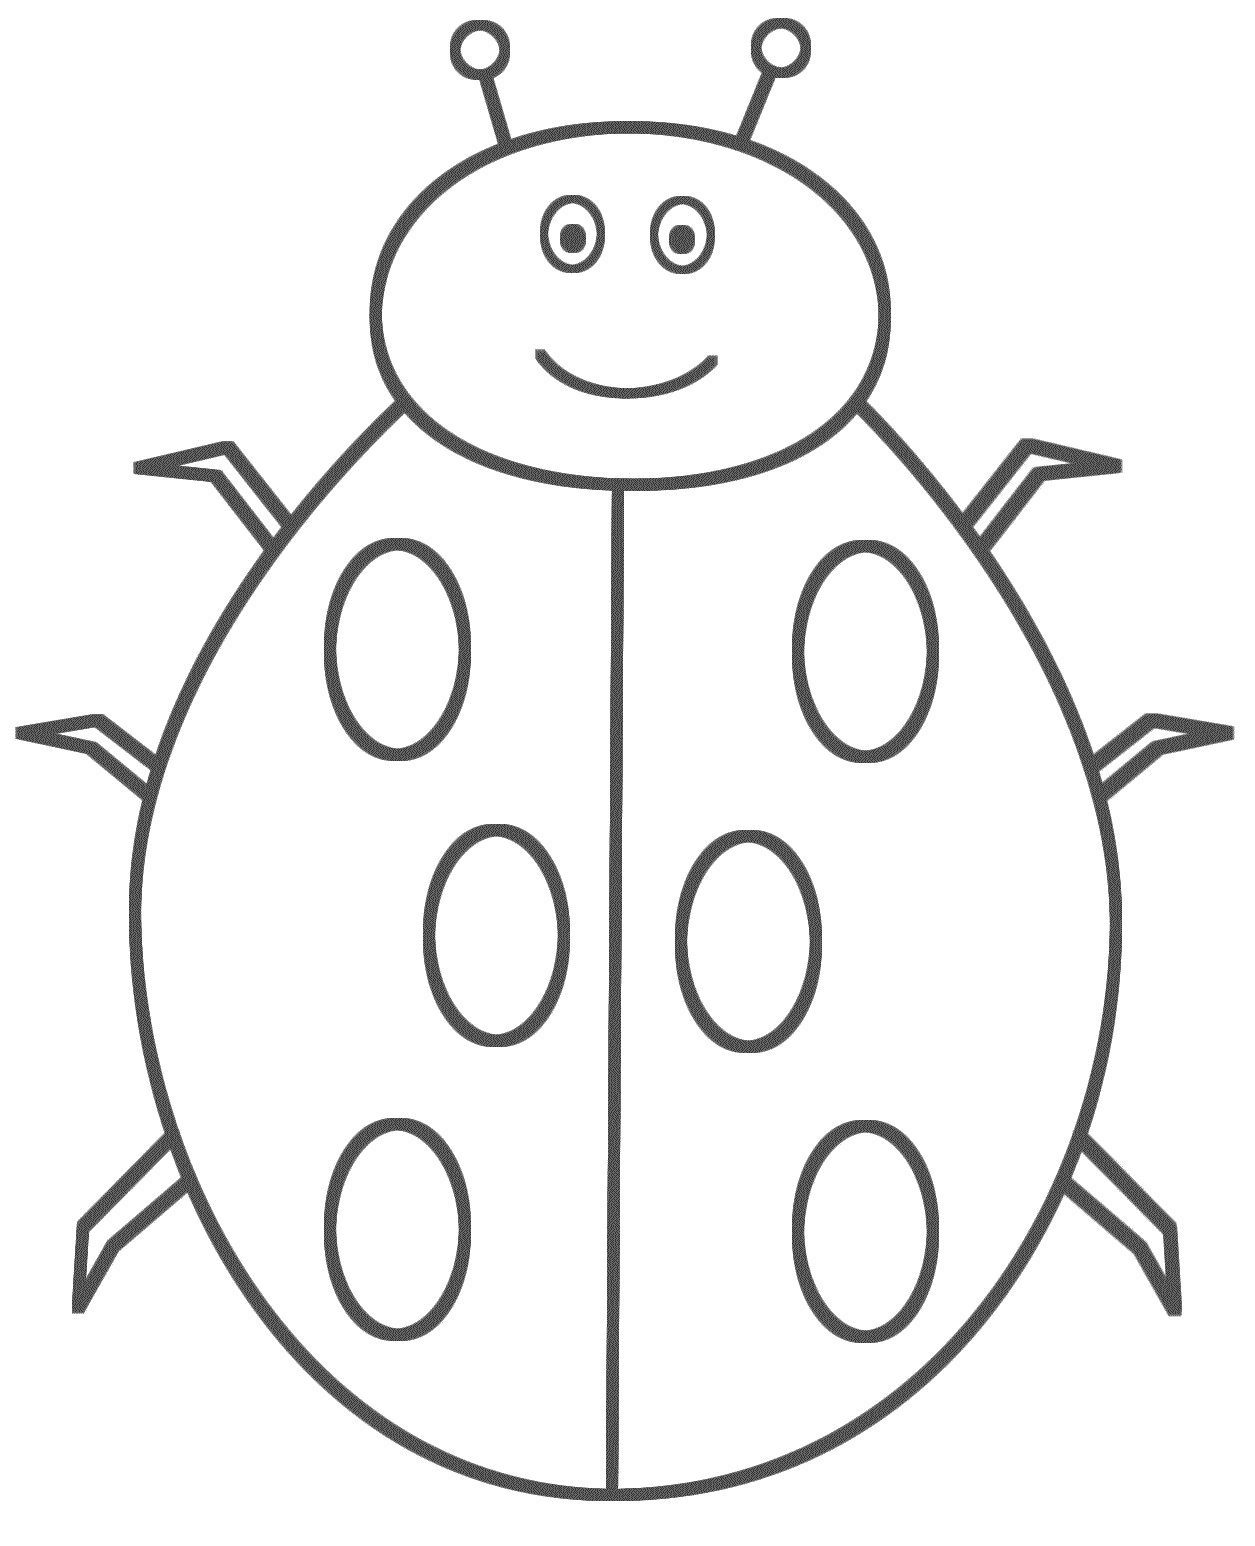 1255x1546 Ladybug Coloring Pages For Kids Freecolorngpages.co